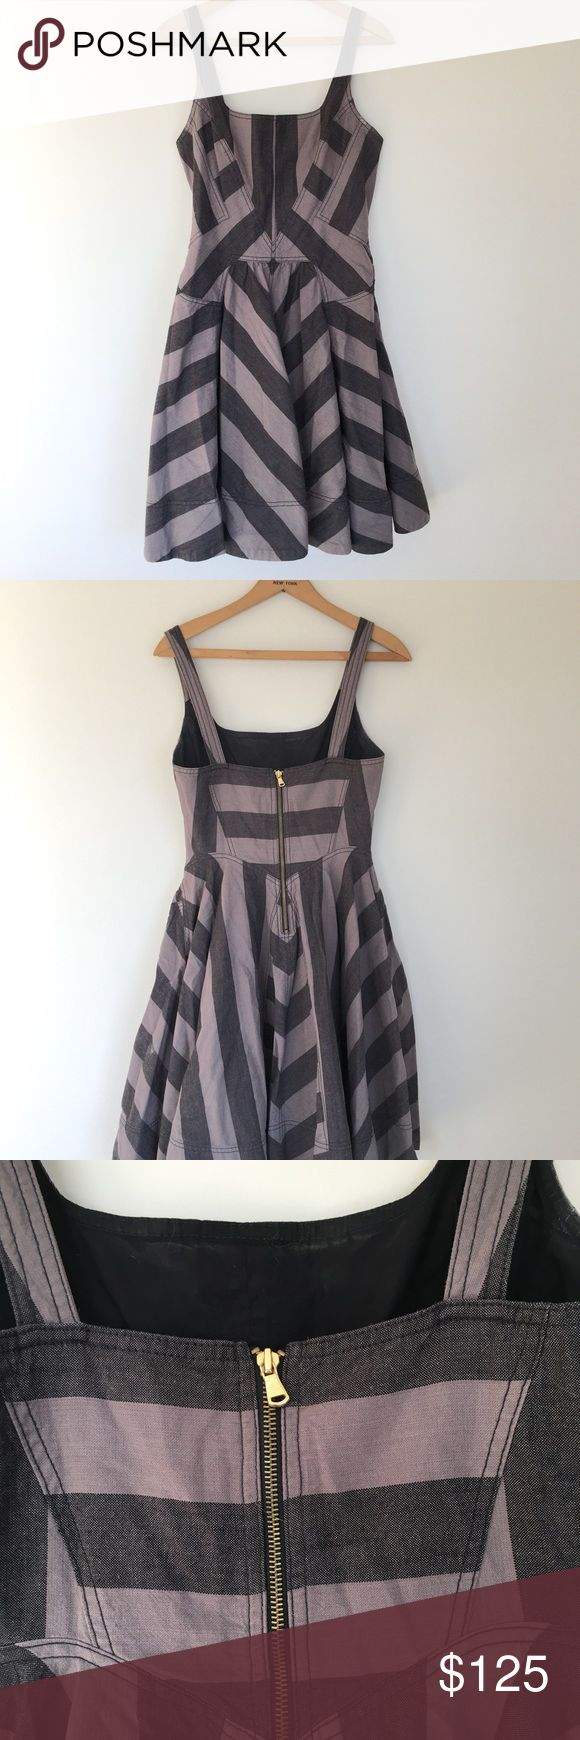 Marc by Marc Jacobs punk Denim dress Marc by Marc Jacobs  Grey and Black striped dress that defines the punks heart. Heavy weight material. Denim like.   Size 8 Length 35 inches Width 28 inches 100% cotton Status: Preloved no flaws Marc By Marc Jacobs Dresses Midi